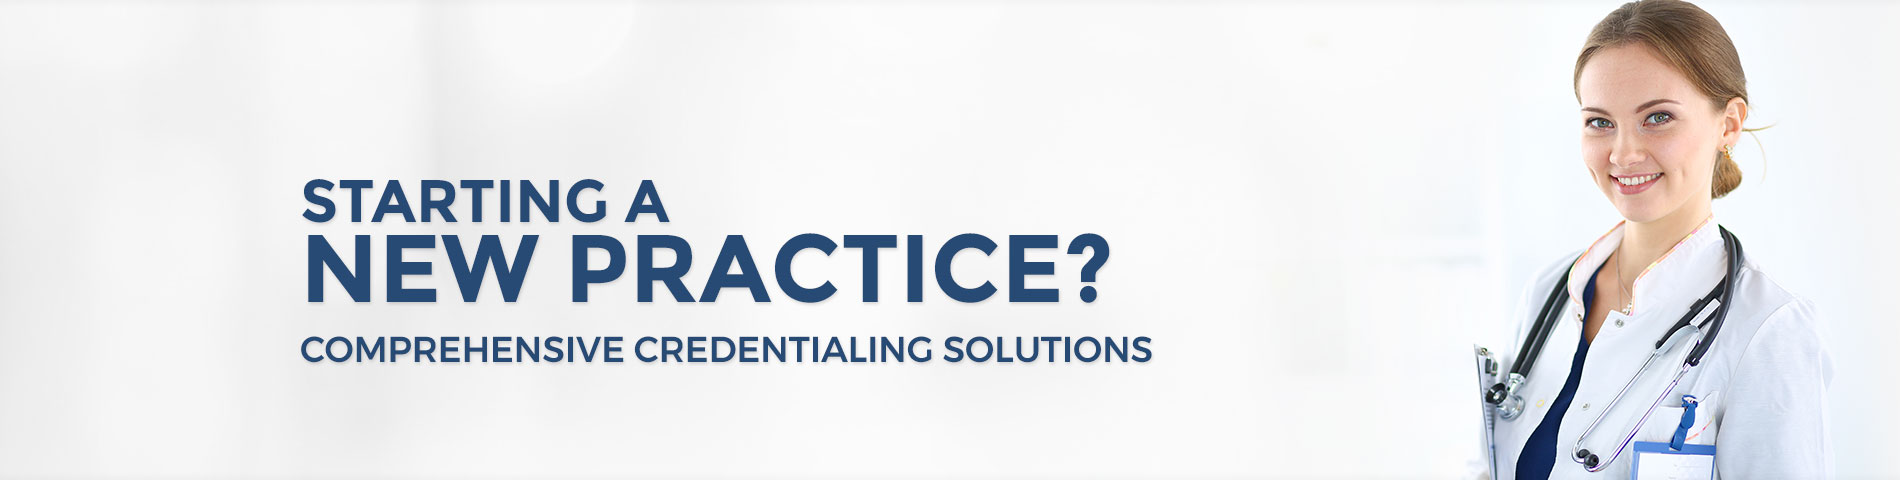 Medical Insurance Contracting & Credentialing